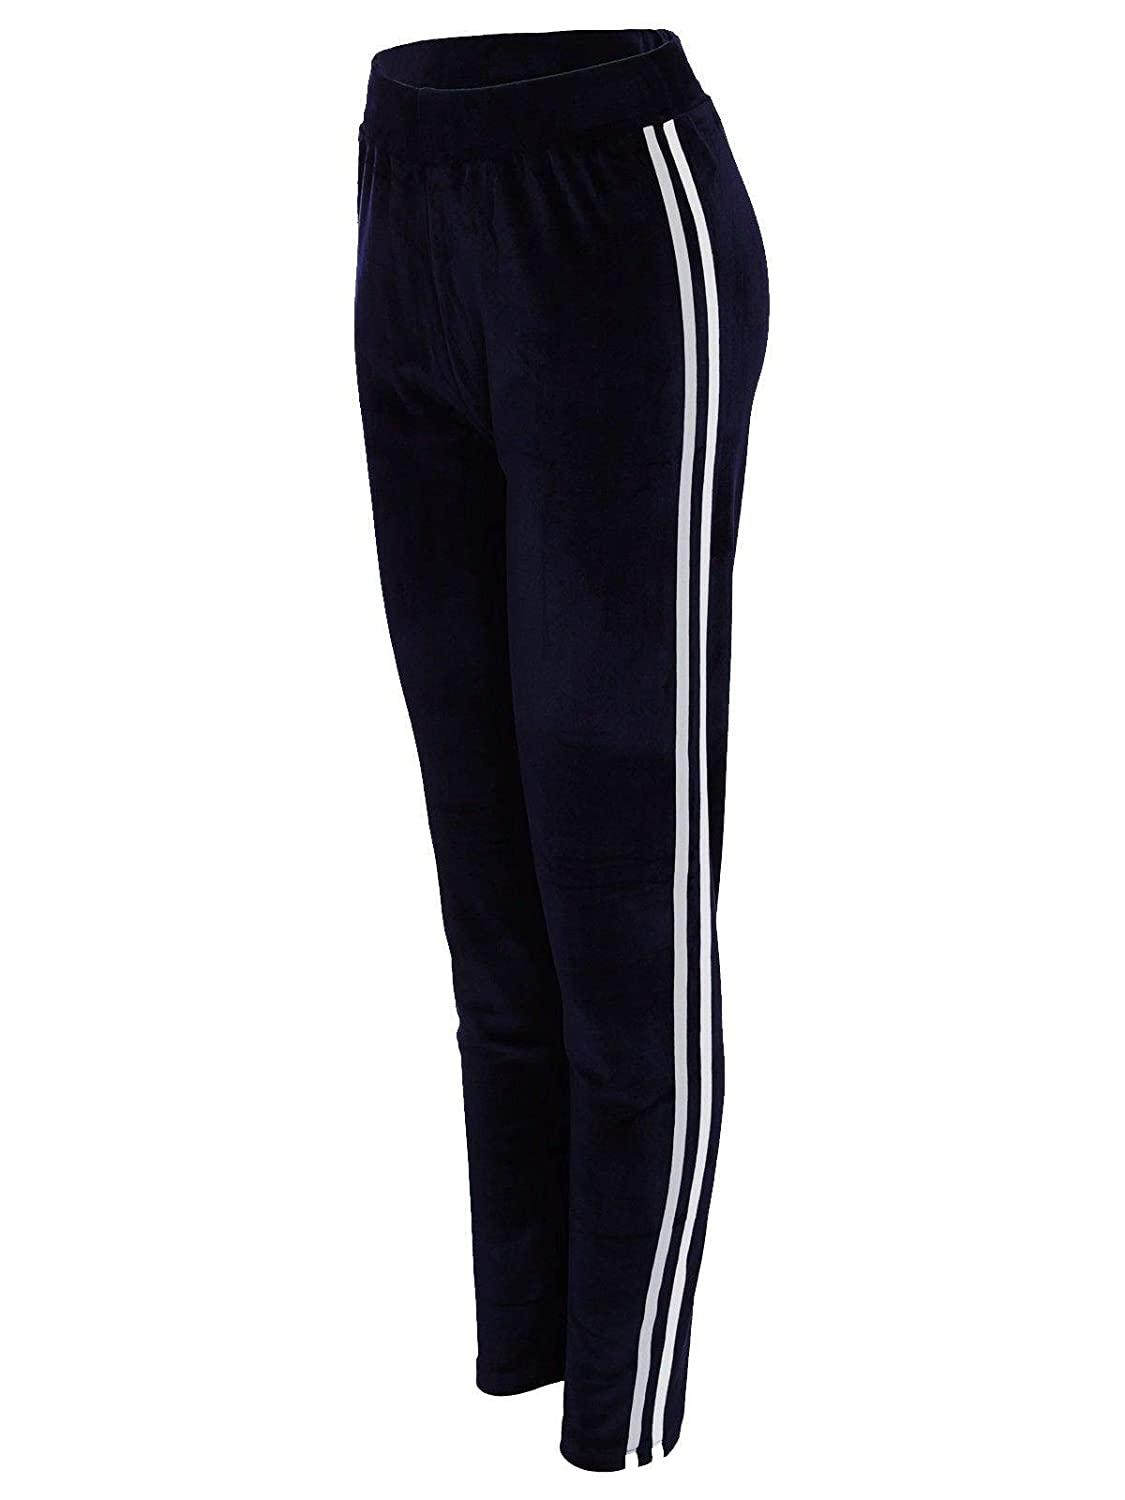 Ladies Velvet (Velore) Jogger Tracksuit Pants Active Gym Yoga Fitness Bottoms 8-16